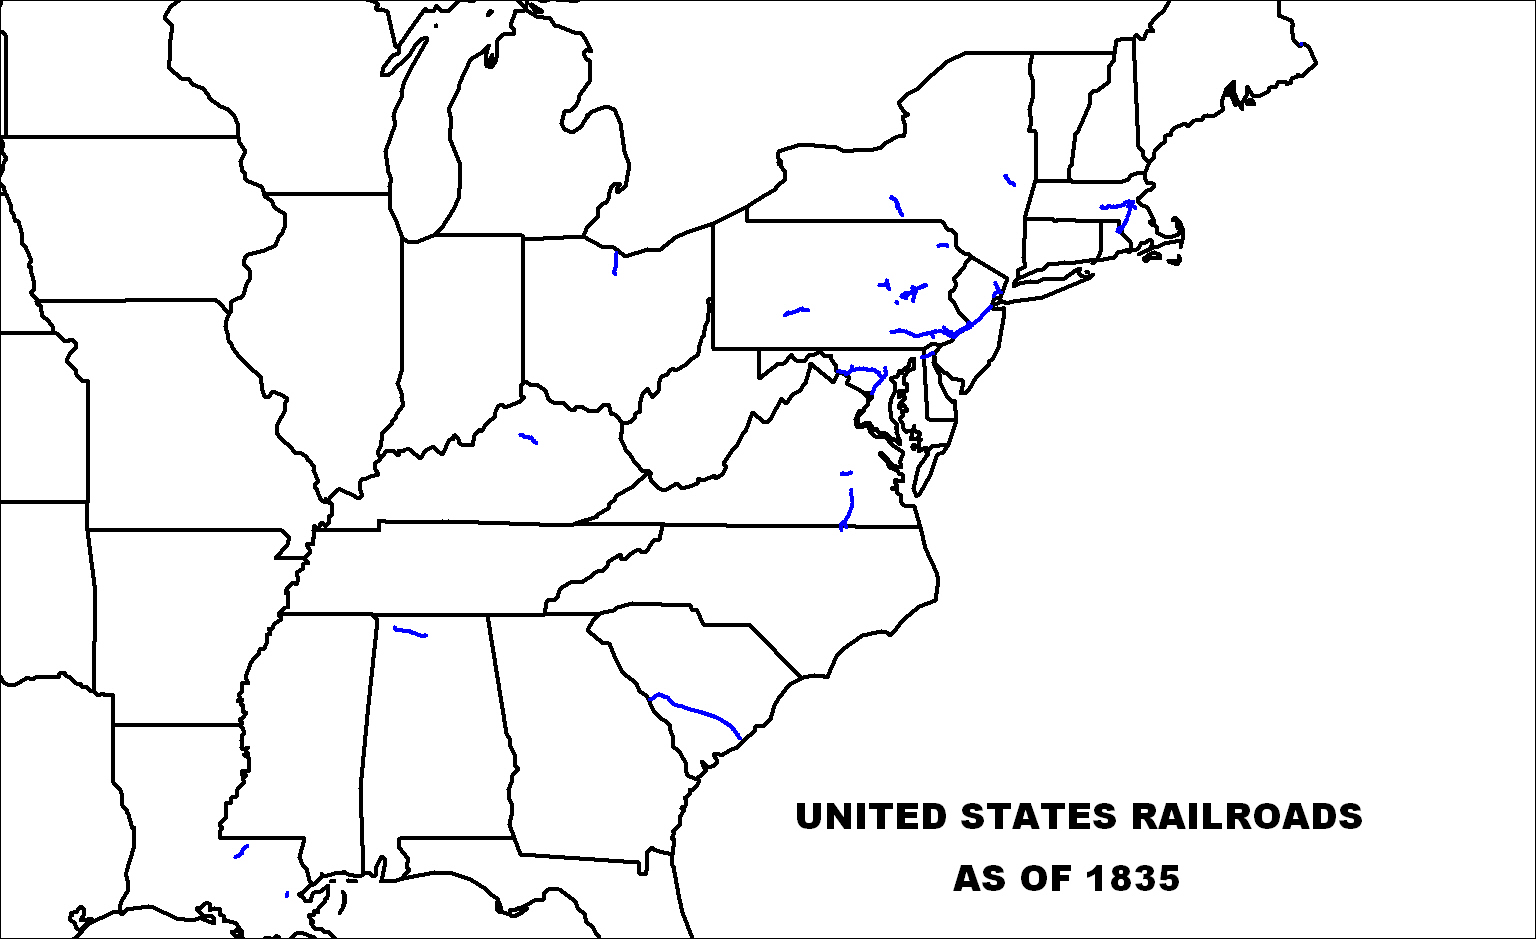 US Railroads Map as of 1835